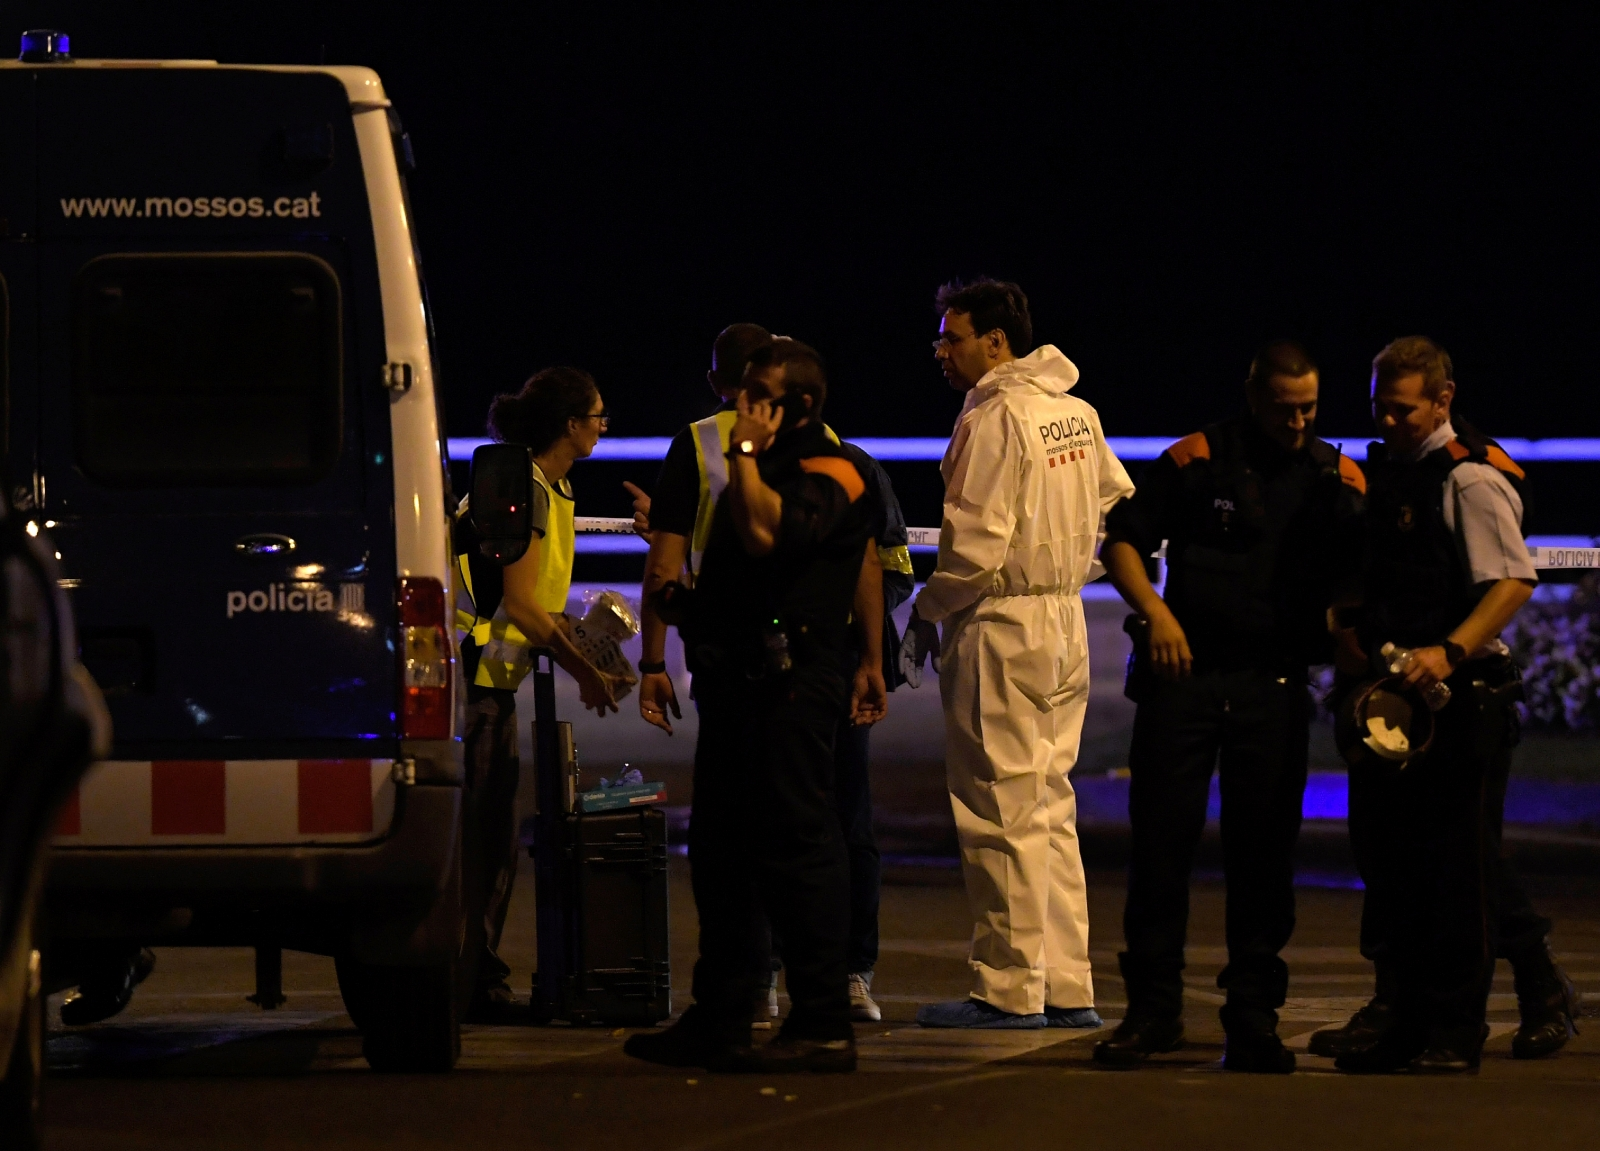 Spanish Police foil second attack after shootout in Cambrils